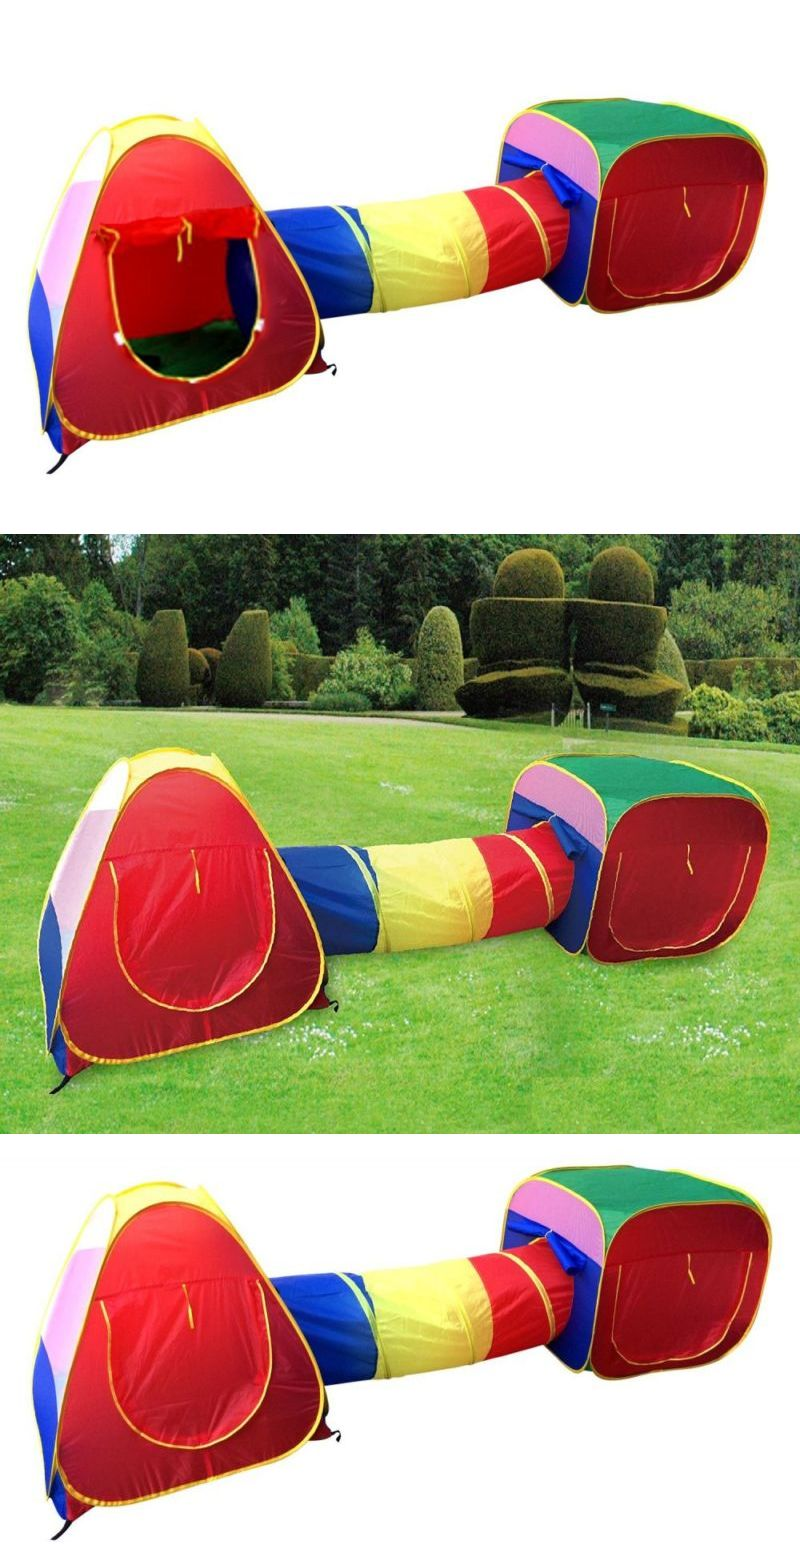 Tunnels 145998 Cubby-Tube-Teepee 3Pc Pop-Up Play Tent Children Tunnel  sc 1 st  Pinterest & Tunnels 145998: Cubby-Tube-Teepee 3Pc Pop-Up Play Tent Children ...